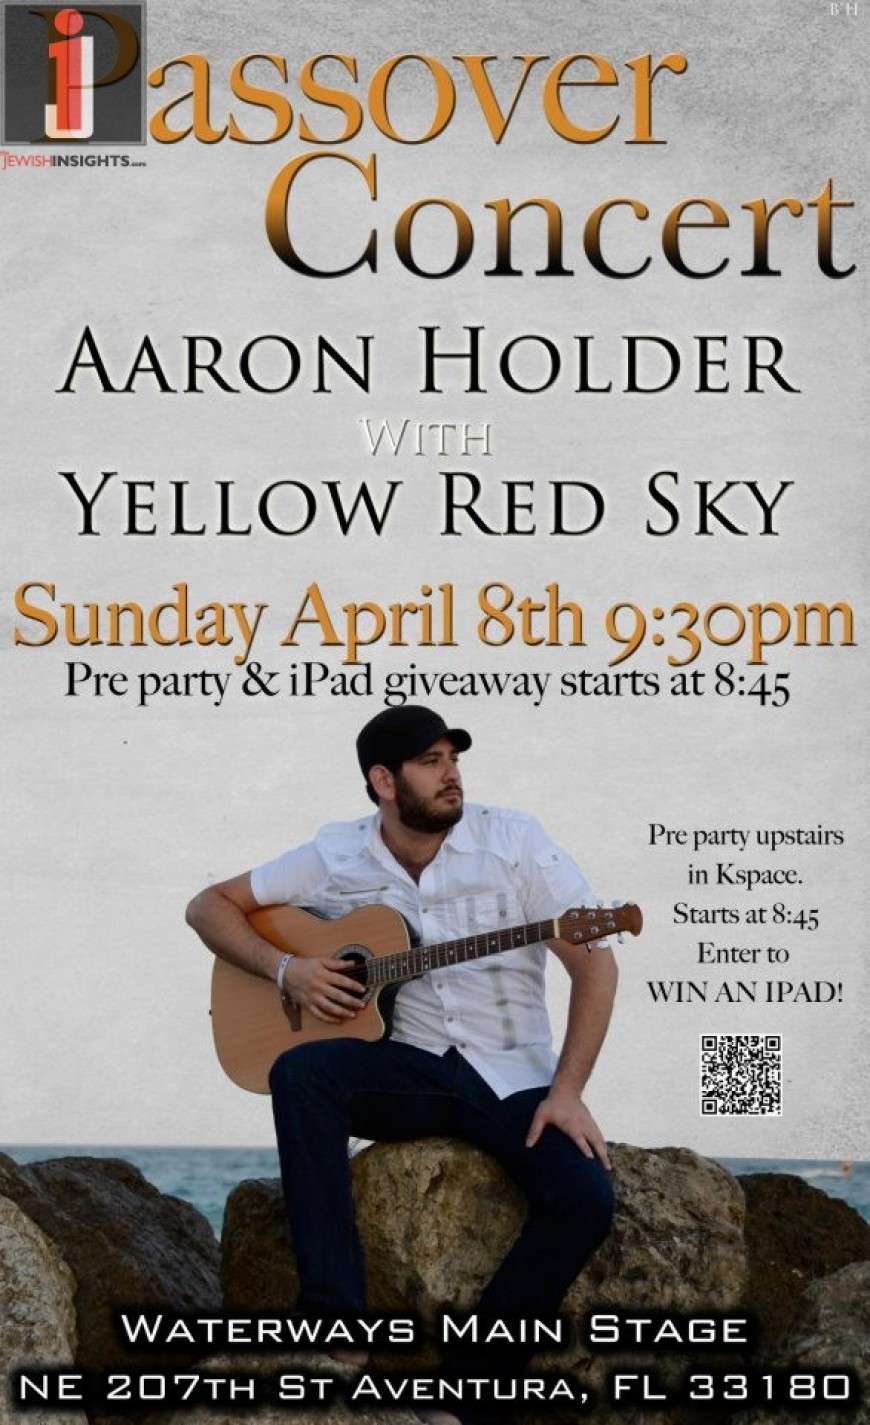 Passover Concert with Aaron Holder & Yellow Red Sky